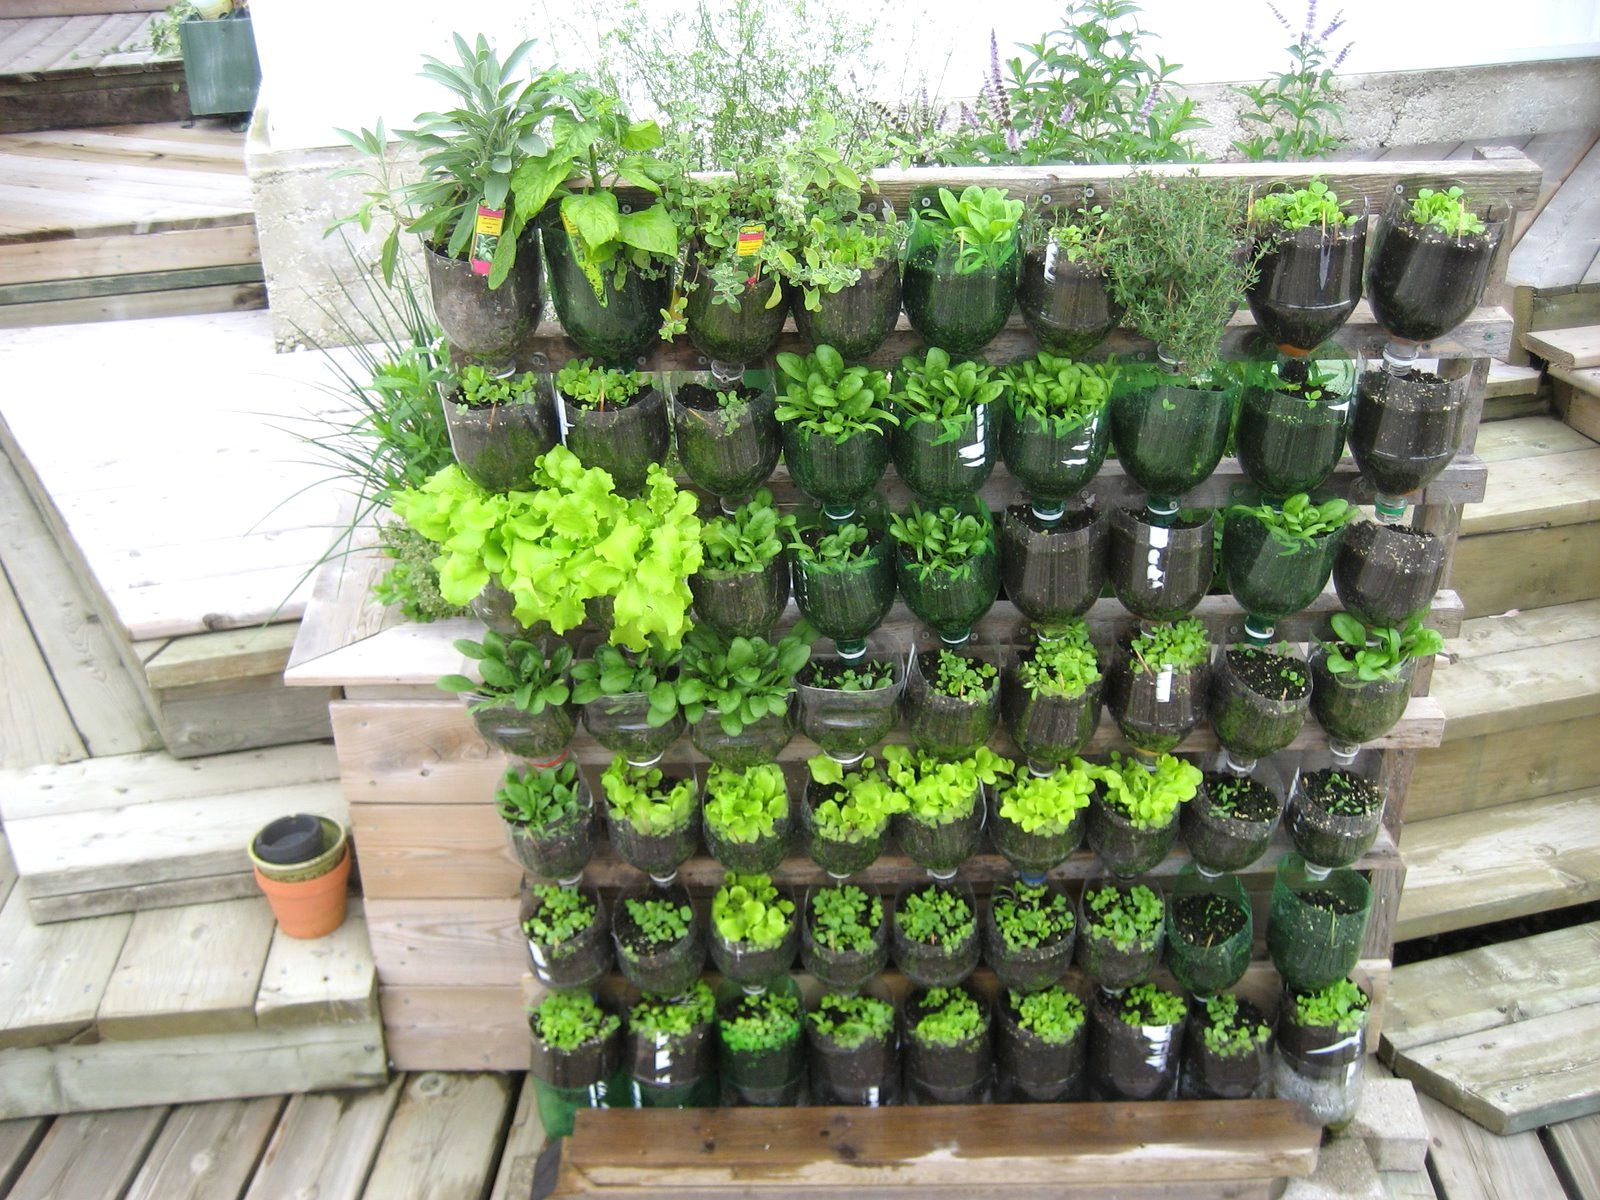 Best ideas about Home Vegetable Garden Ideas . Save or Pin Related Wallpaper For Home Ve able Garden Design Ideas Now.